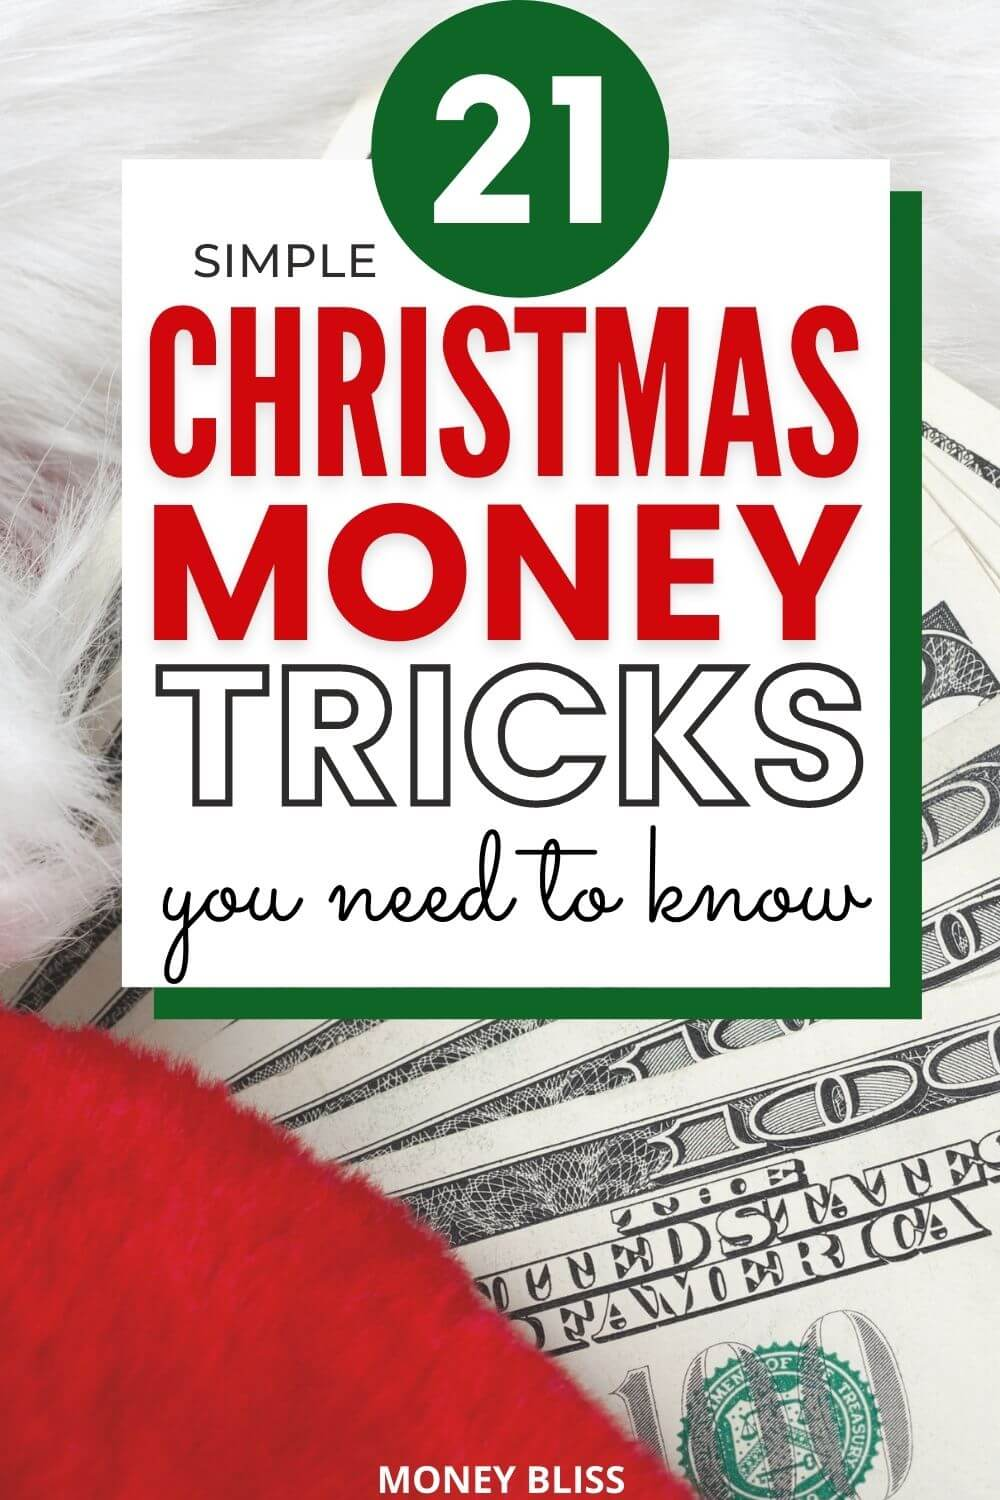 Here are the Christmas money saving tricks you need this season. Learn to plan and stick to your Christmas budget, save money with a Christmas money saving challenge, make money during the Christmas season! The best part is saving money on gift giving and Christmas shopping.